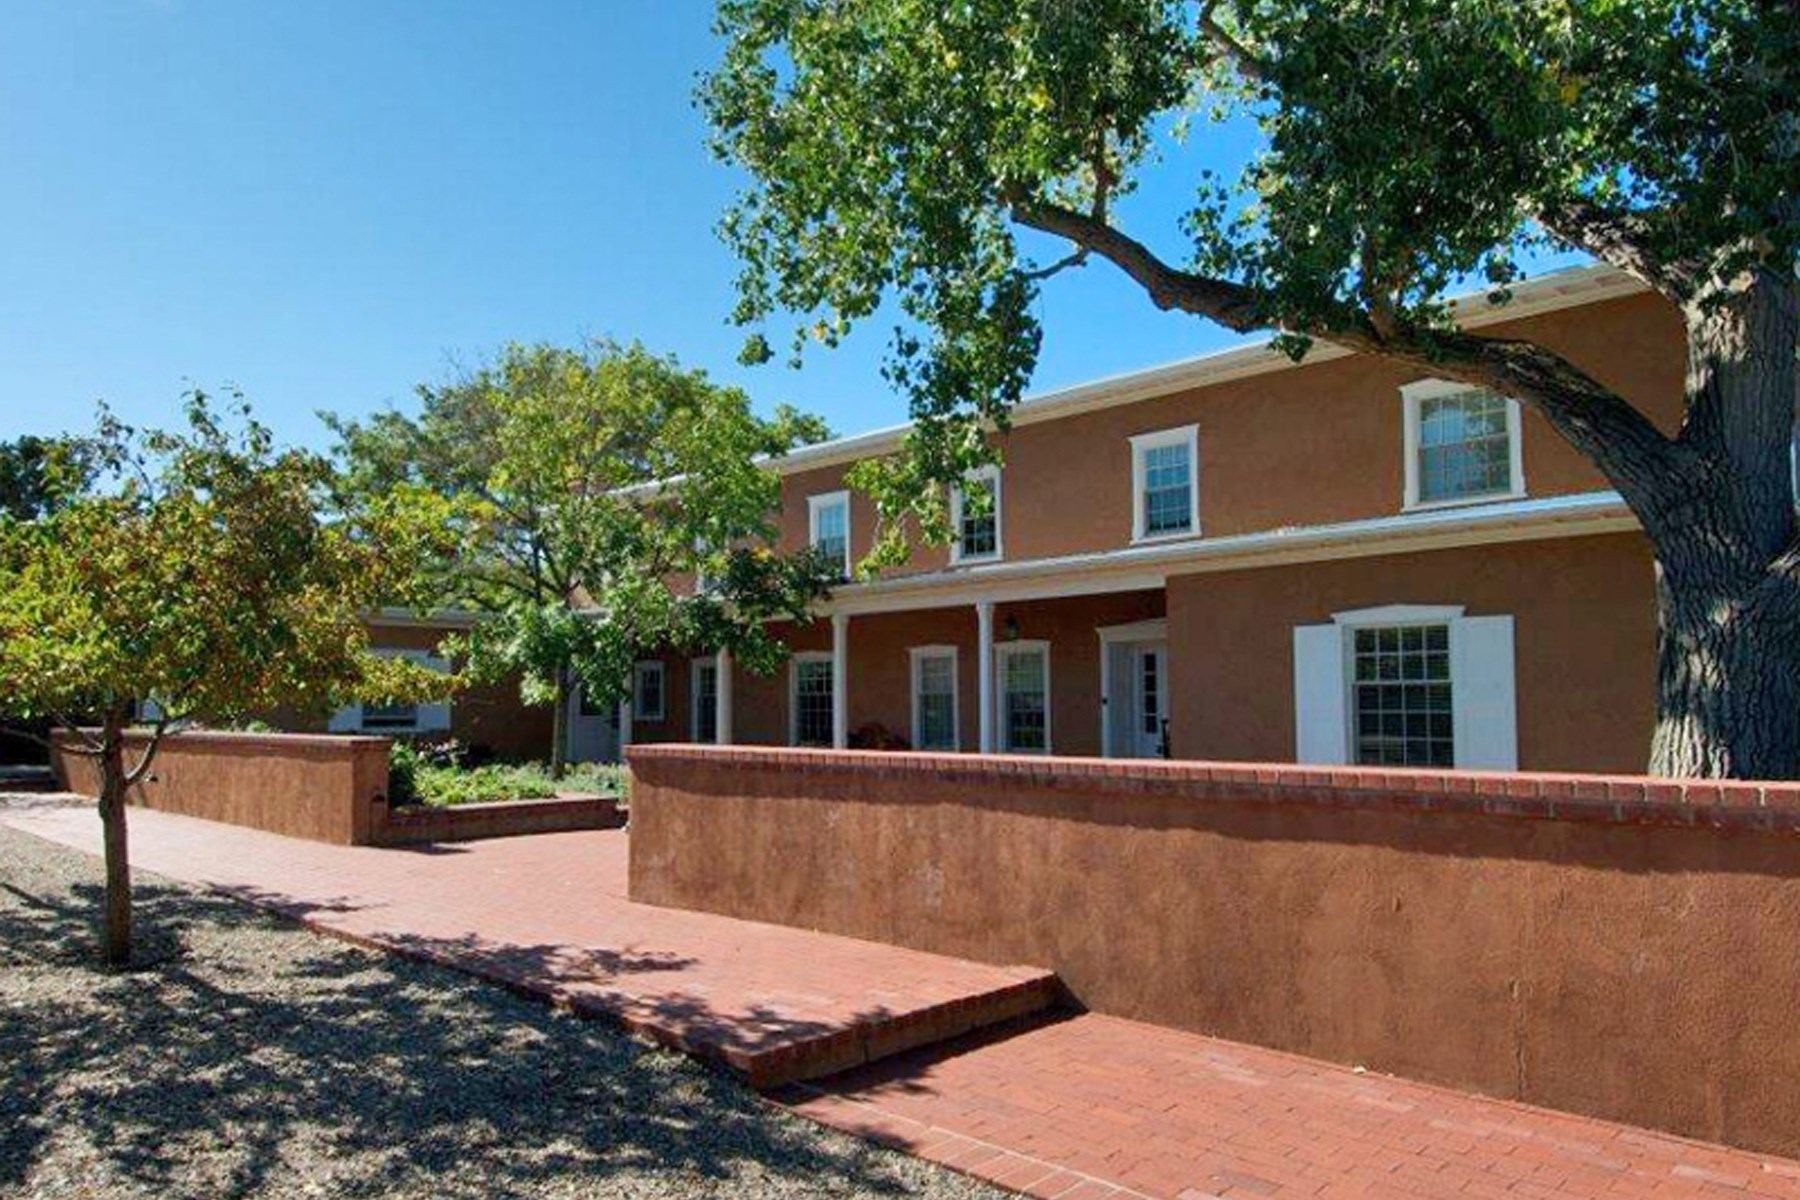 Maison unifamiliale pour l Vente à 711 Panorama Lane Santa Fe City Northeast, Santa Fe, New Mexico 87501 États-Unis